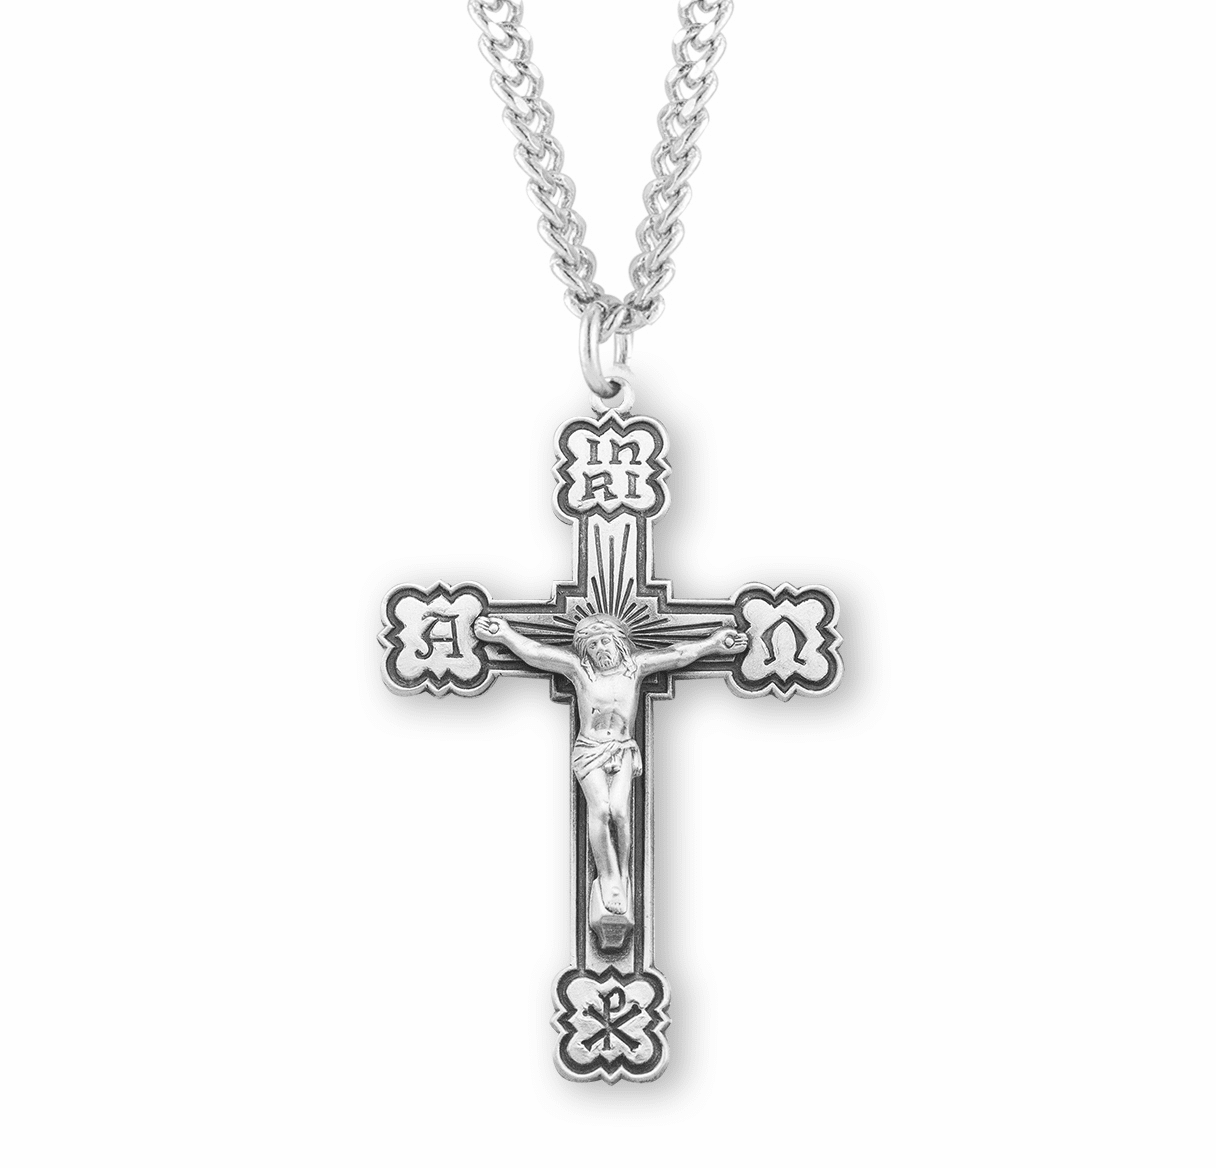 HMH Religious Alpha and Omega Sterling Silver Crucifix with Chain